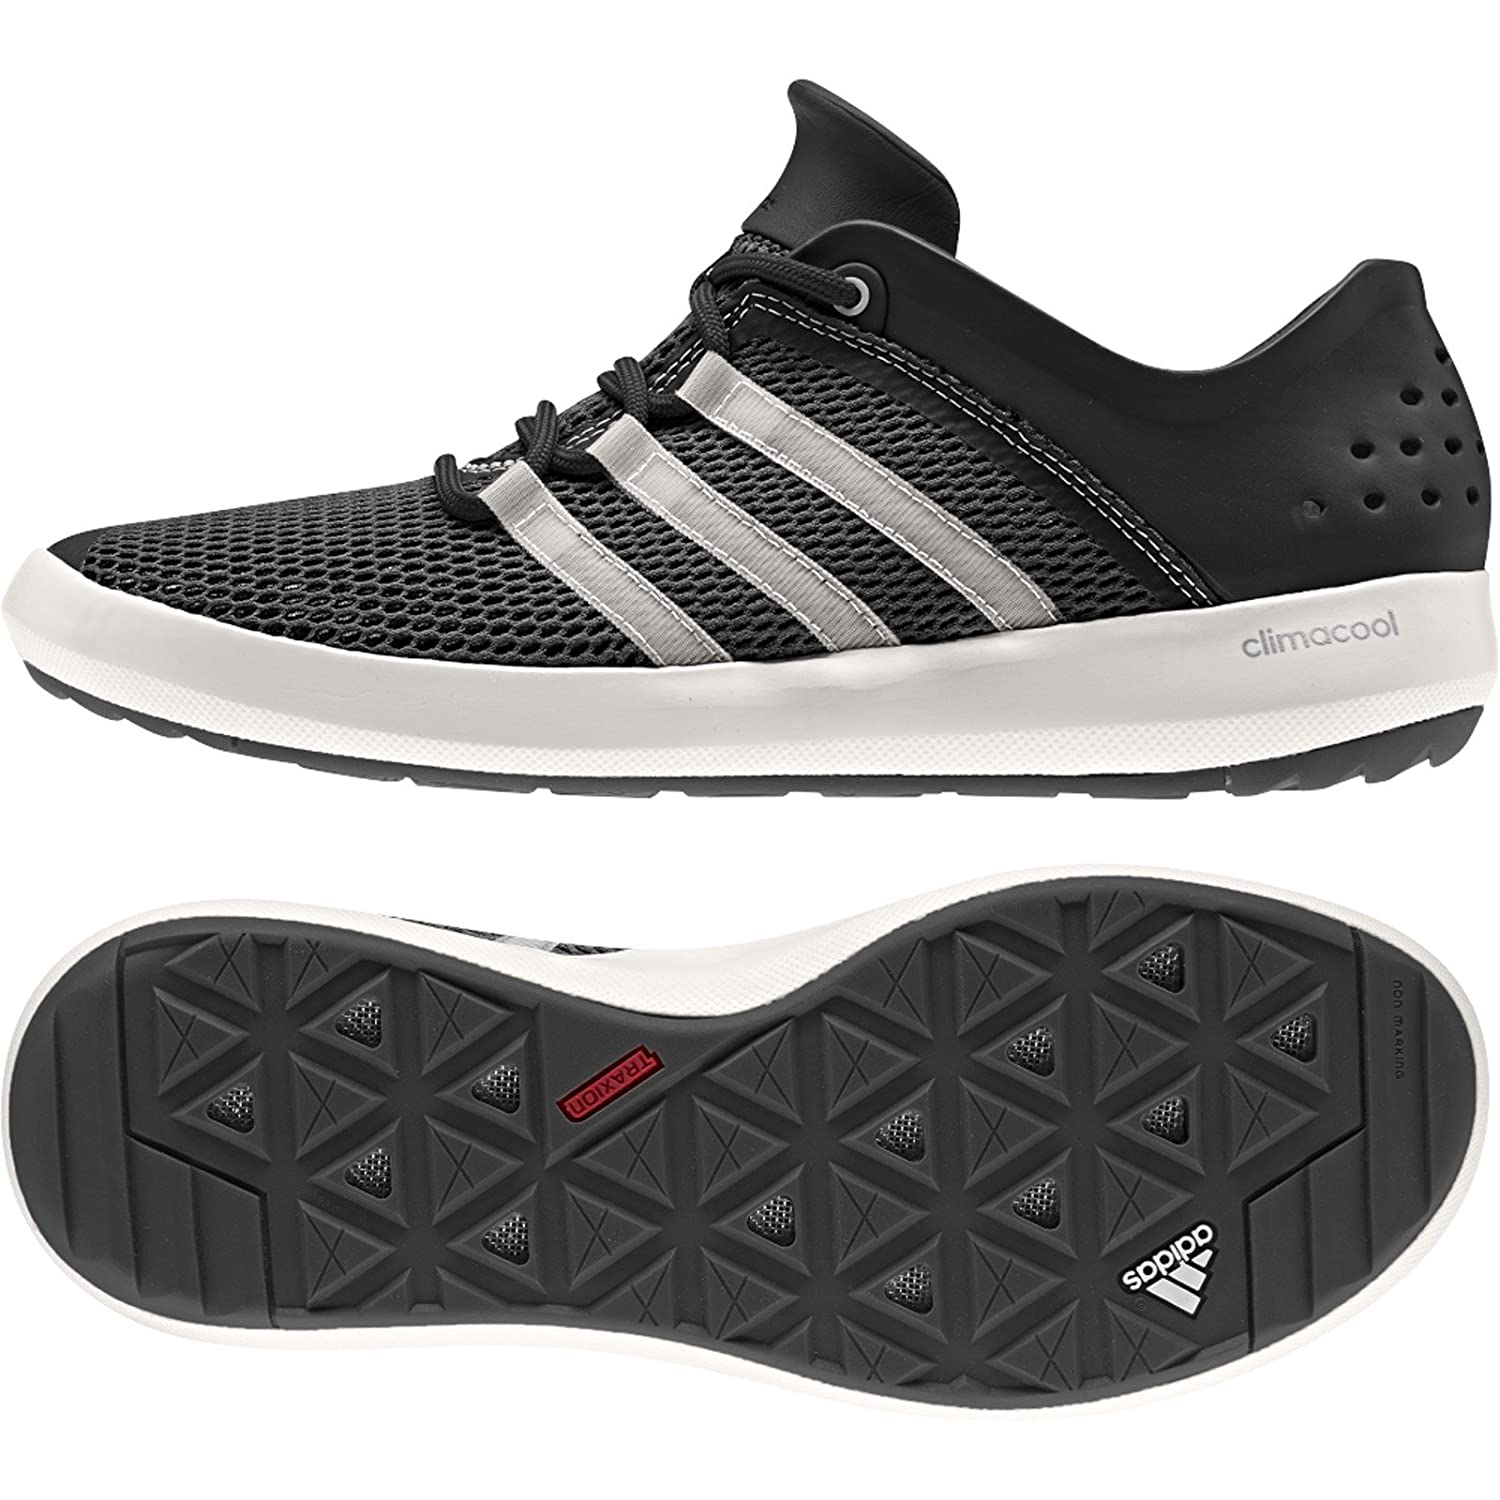 adidas outdoor Mens Climacool Boat Pure